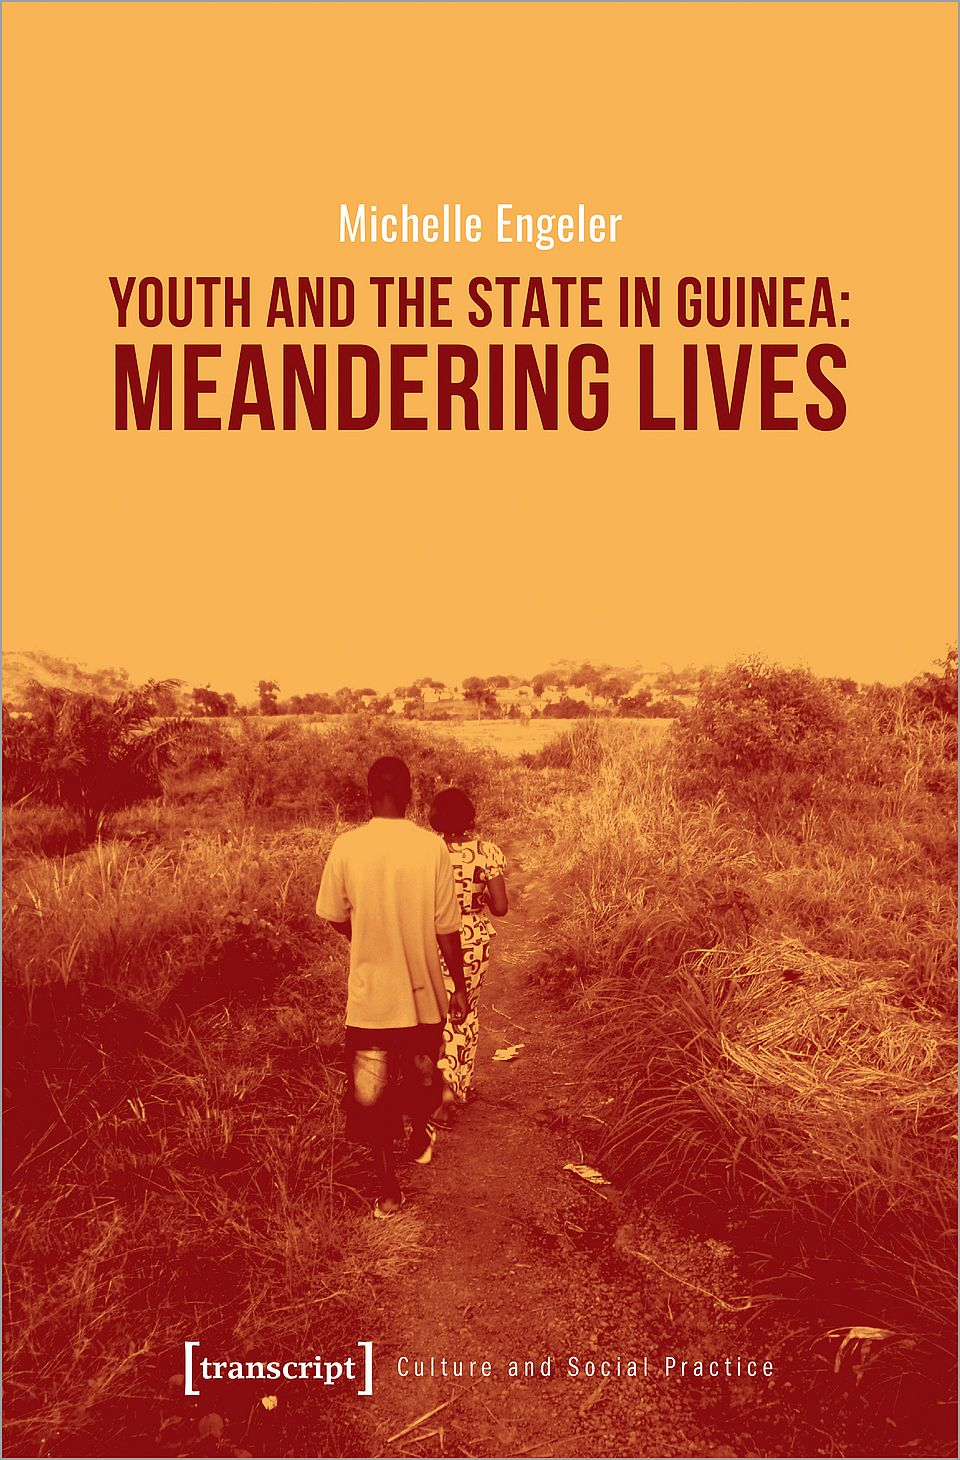 Cover M Engeler Youth and the State in Guinea